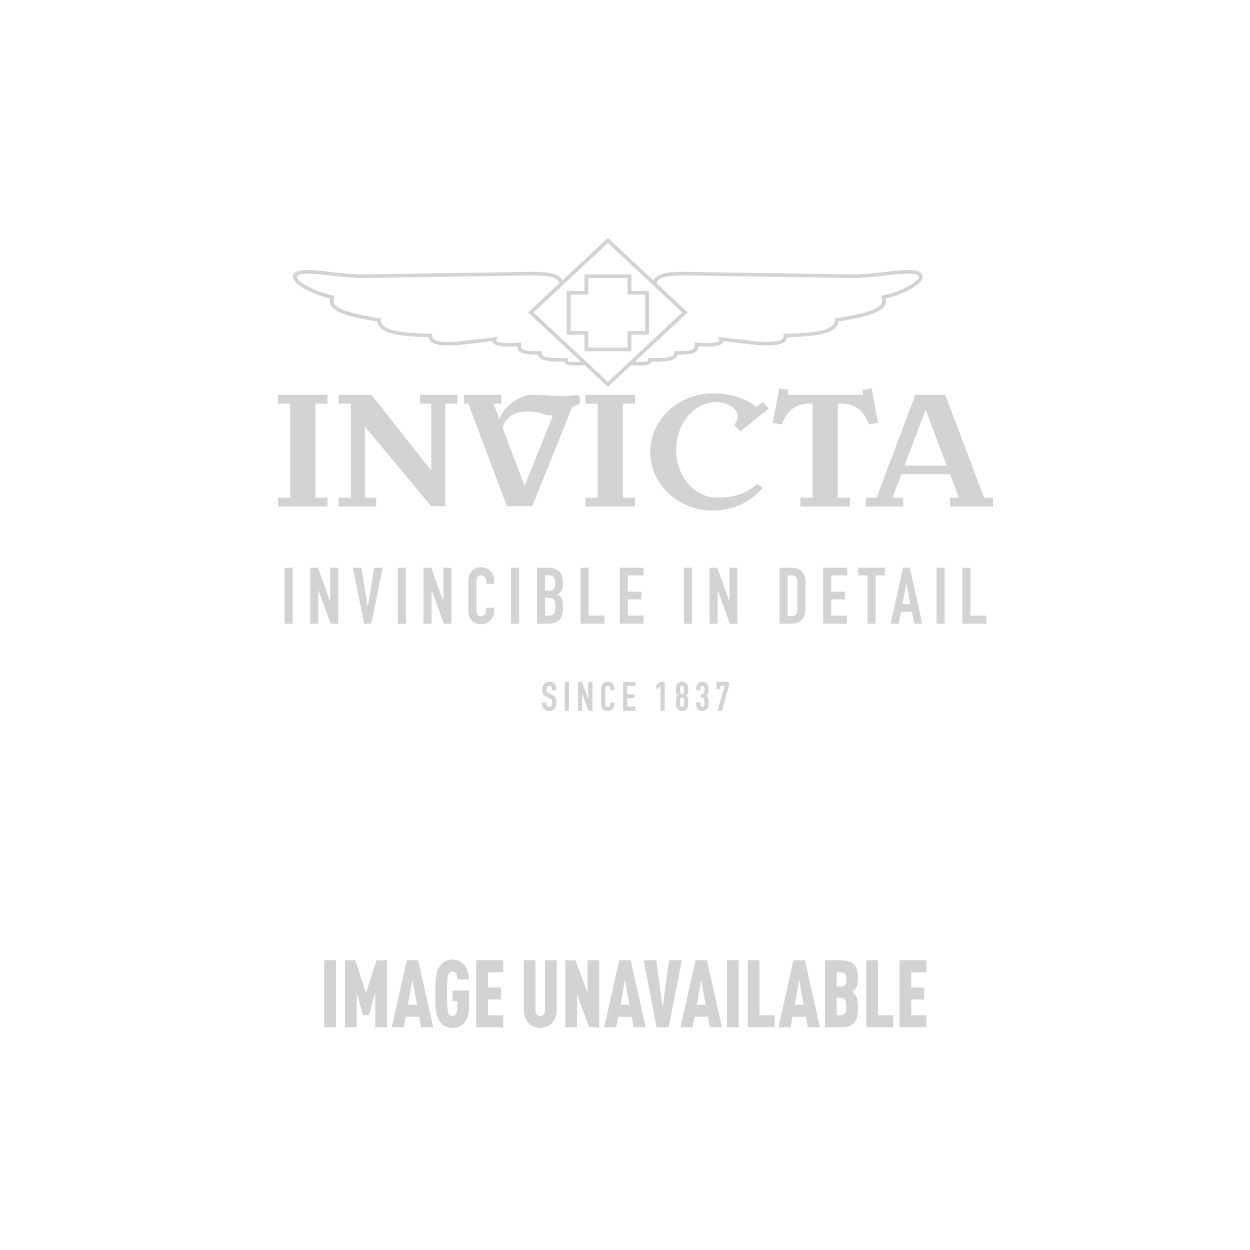 Invicta 20cm Women's Bracelets in Rose Gold - Model J0267